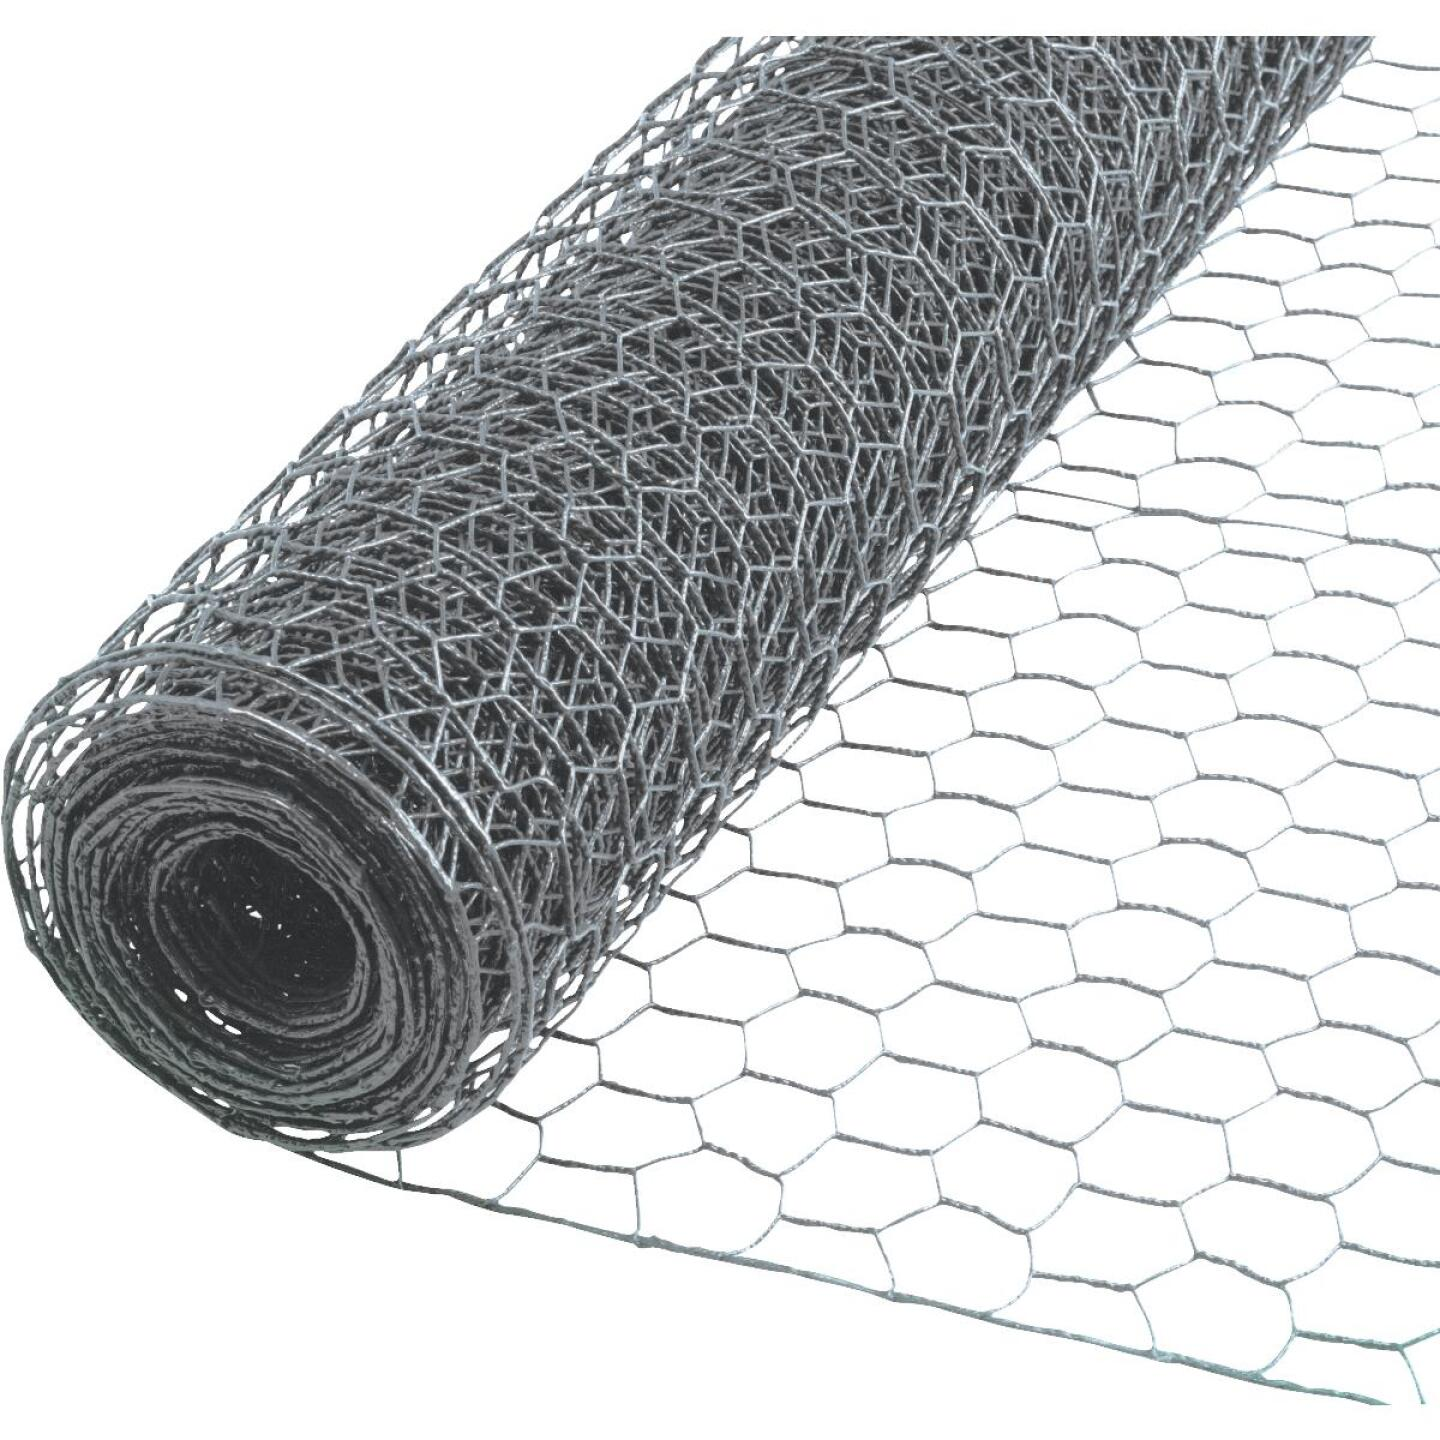 Do it 2 In. x 24 In. H. x 25 Ft. L. Hexagonal Wire Poultry Netting Image 1